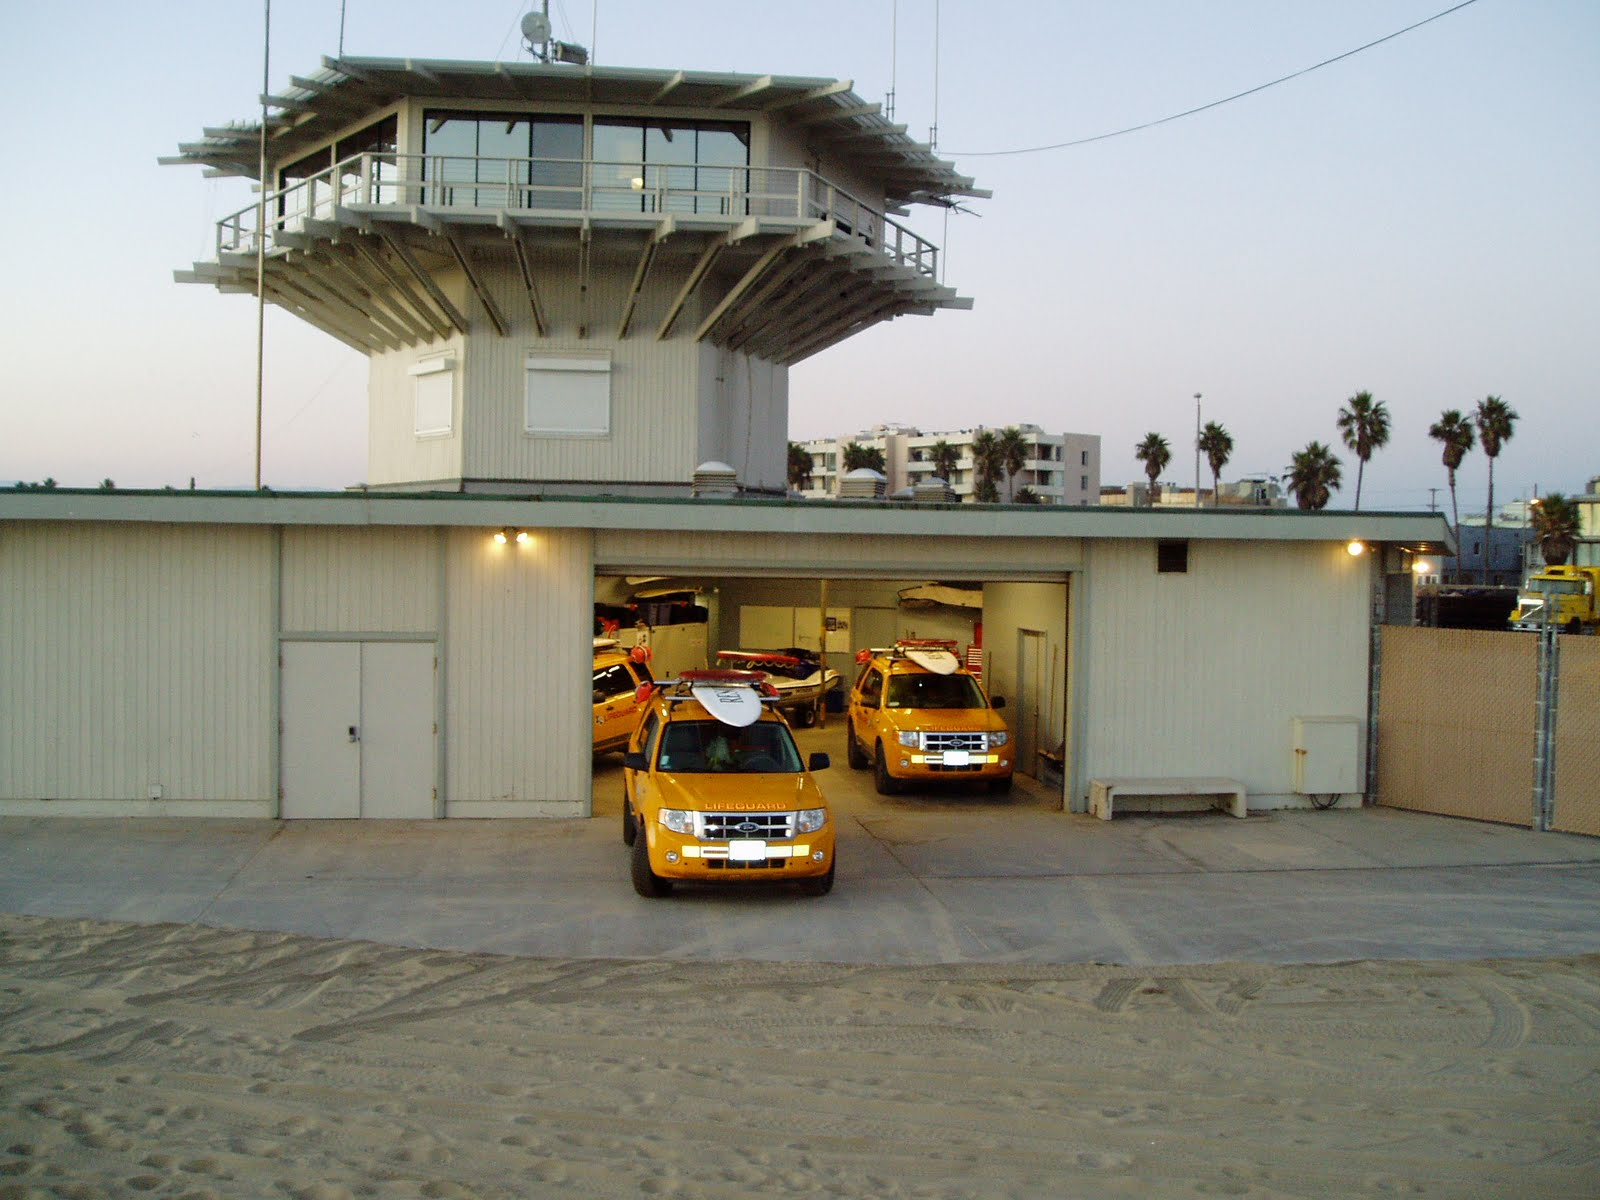 Venice_Beach_Lifeguard_Tower1